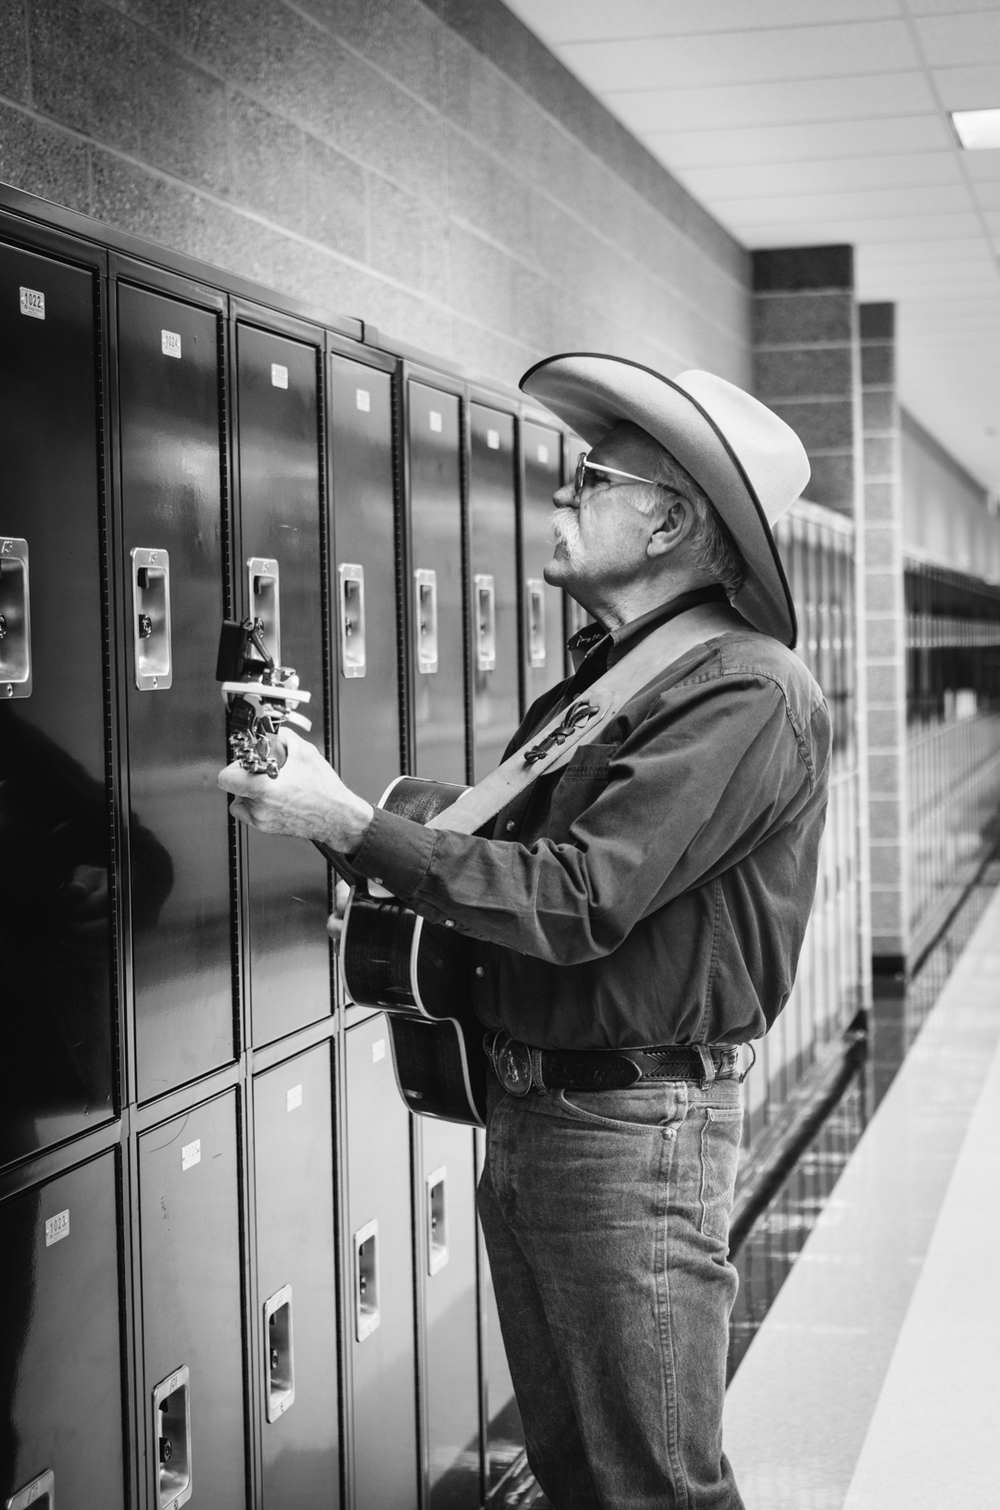 In the bustling Wasatch High School, a performer warms up by listening to the echo of his voice and guitar off of lockers.